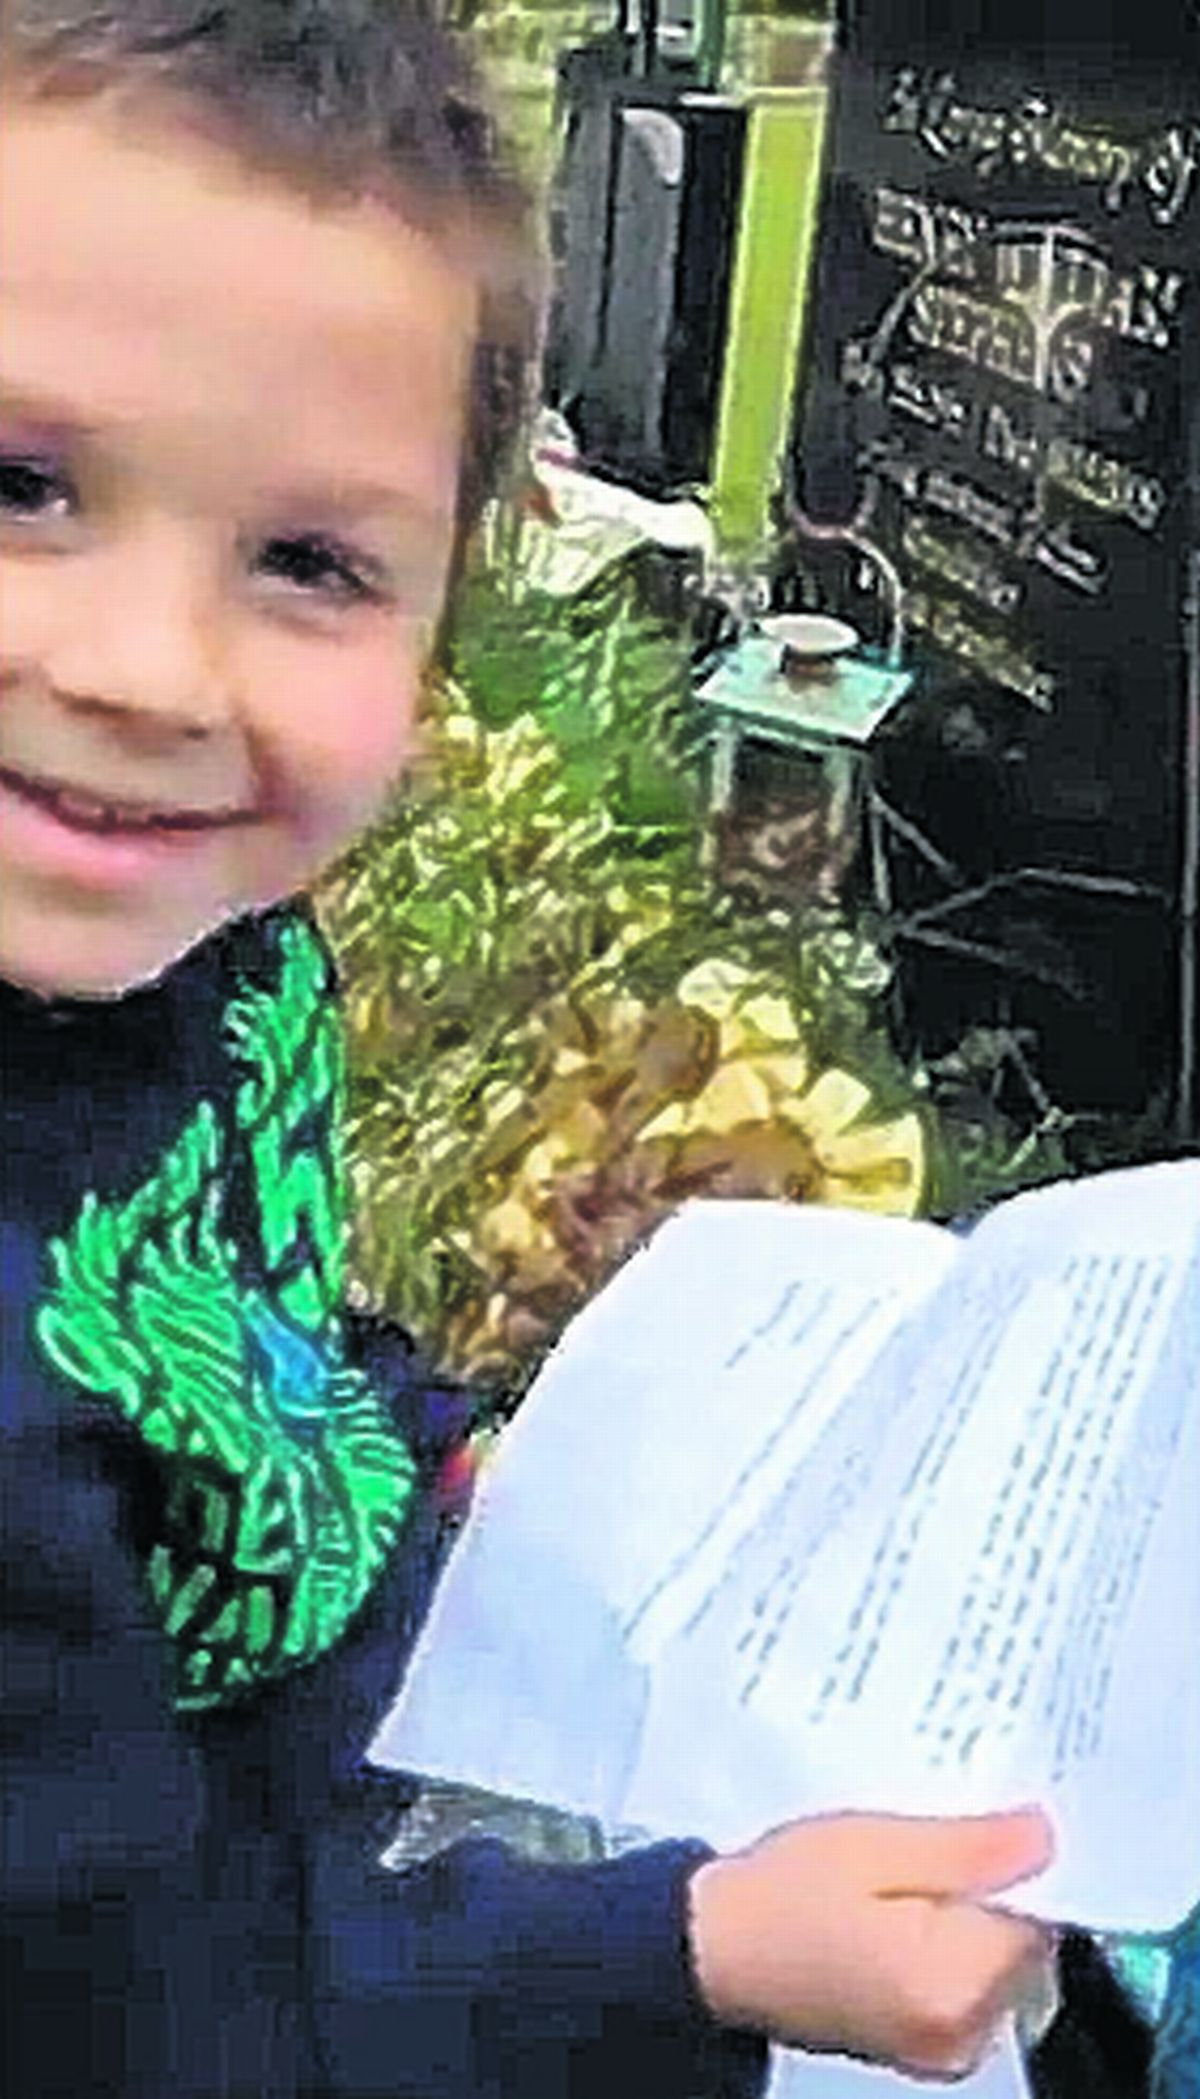 VIDEO: Father's touching letter to eight-year-old son from beyond the grave